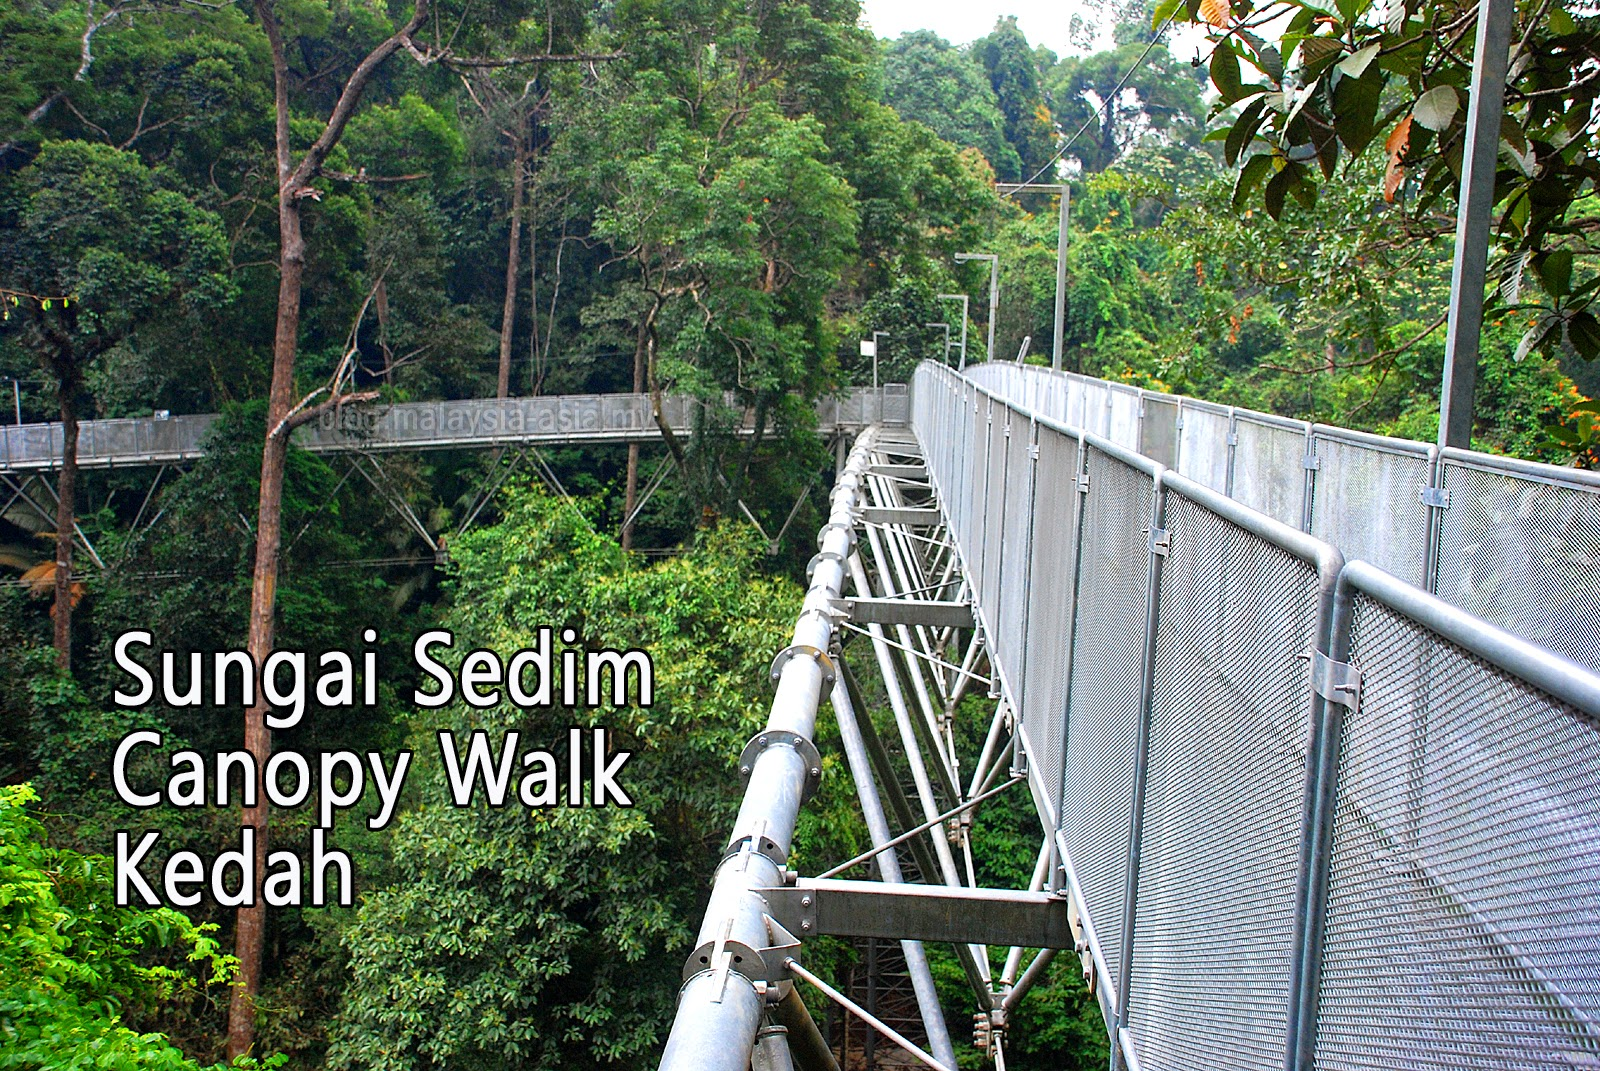 Sungai Sedim Tree Top Walk in Kedah & Canopy Walks in Malaysia - Malaysia Asia Travel Blog